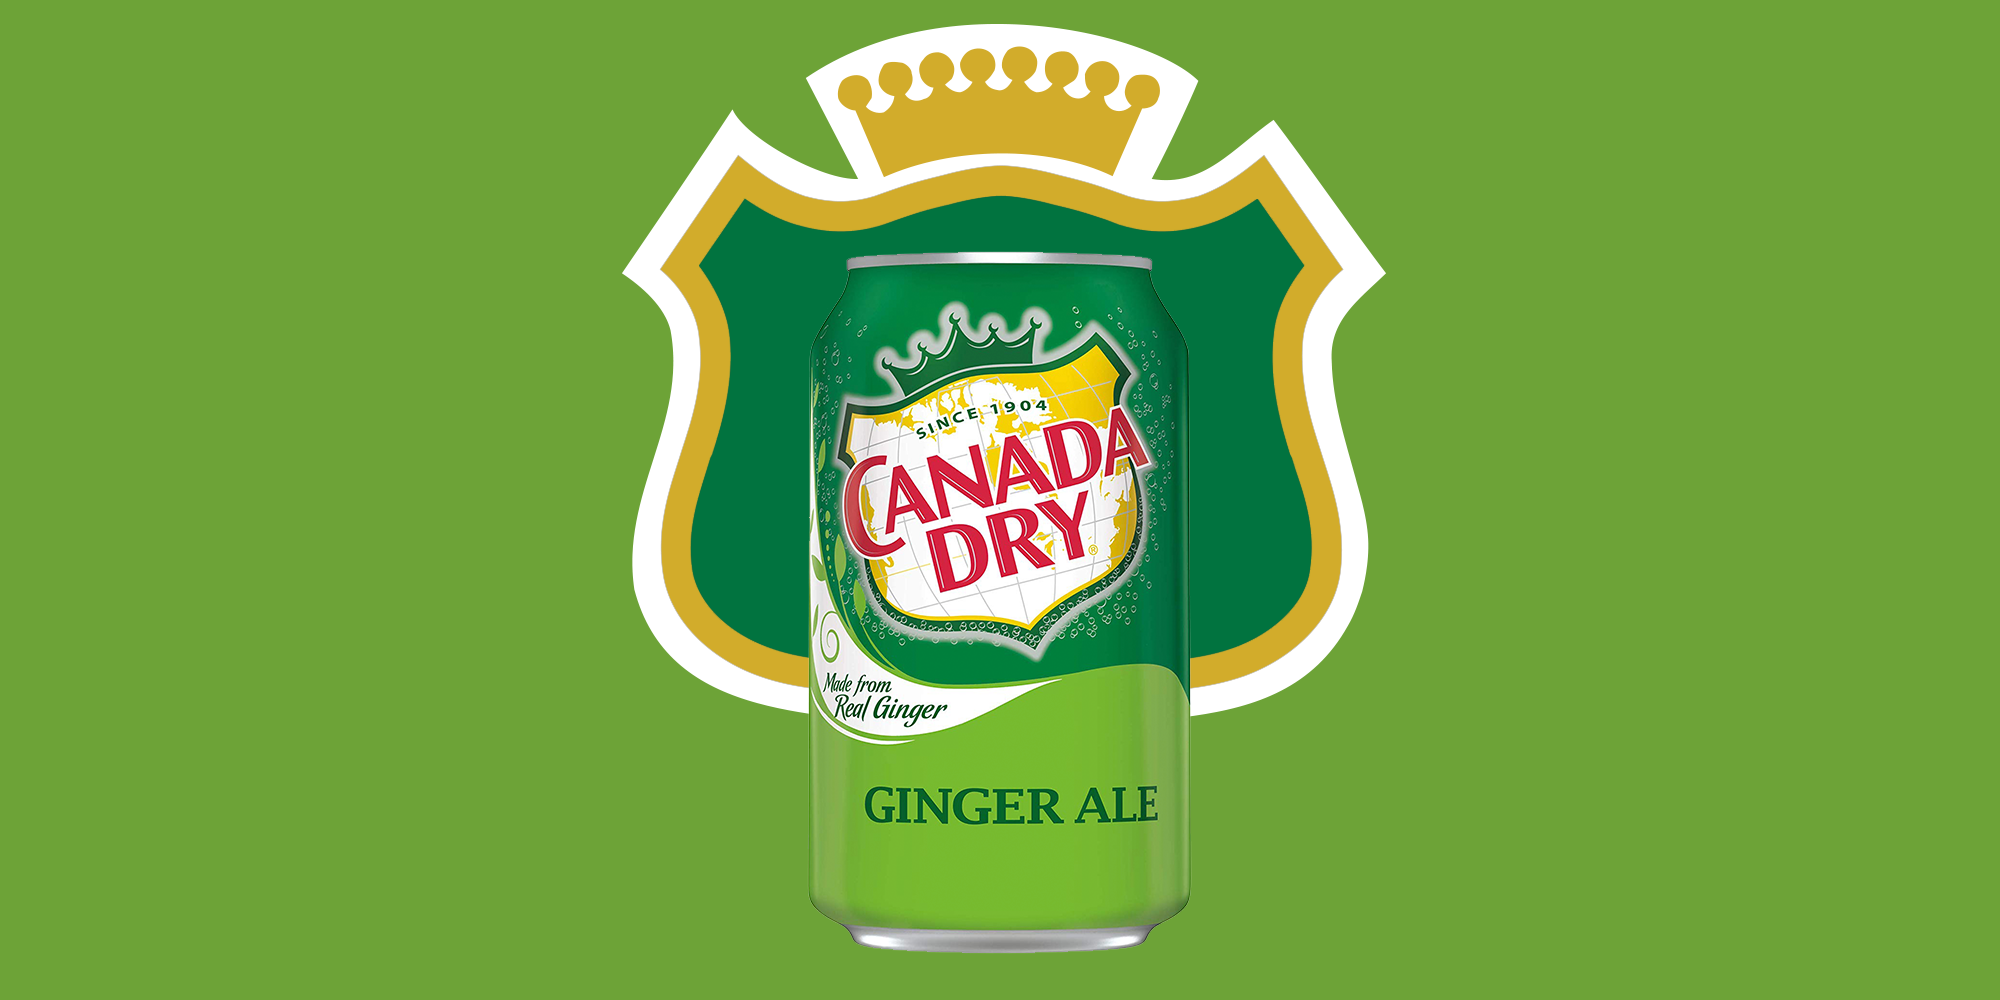 10 Best Ginger Ale Brands Canada Dry Is Still The Top Ginger Soda